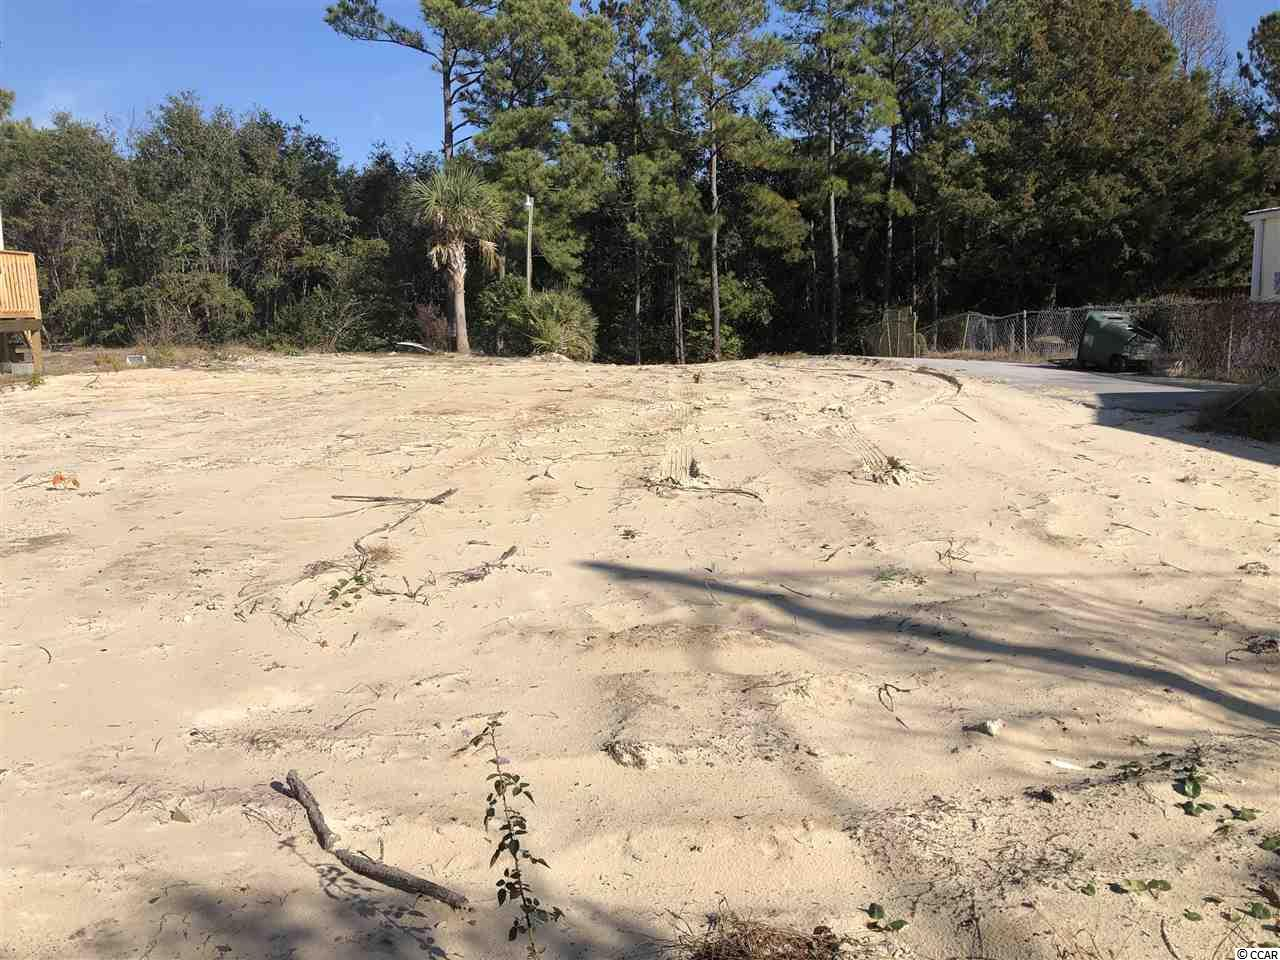 EAST of Business 17! Great lot only 1.5 miles to the ocean and 1/2 mile from the Intracoastal Waterway in Cherry Grove! You can build a custom home, or place a modular or mobile home on this lot. This is a unique opportunity that does not come along very often. The ocean, river and downtown are only a golf cart ride away!